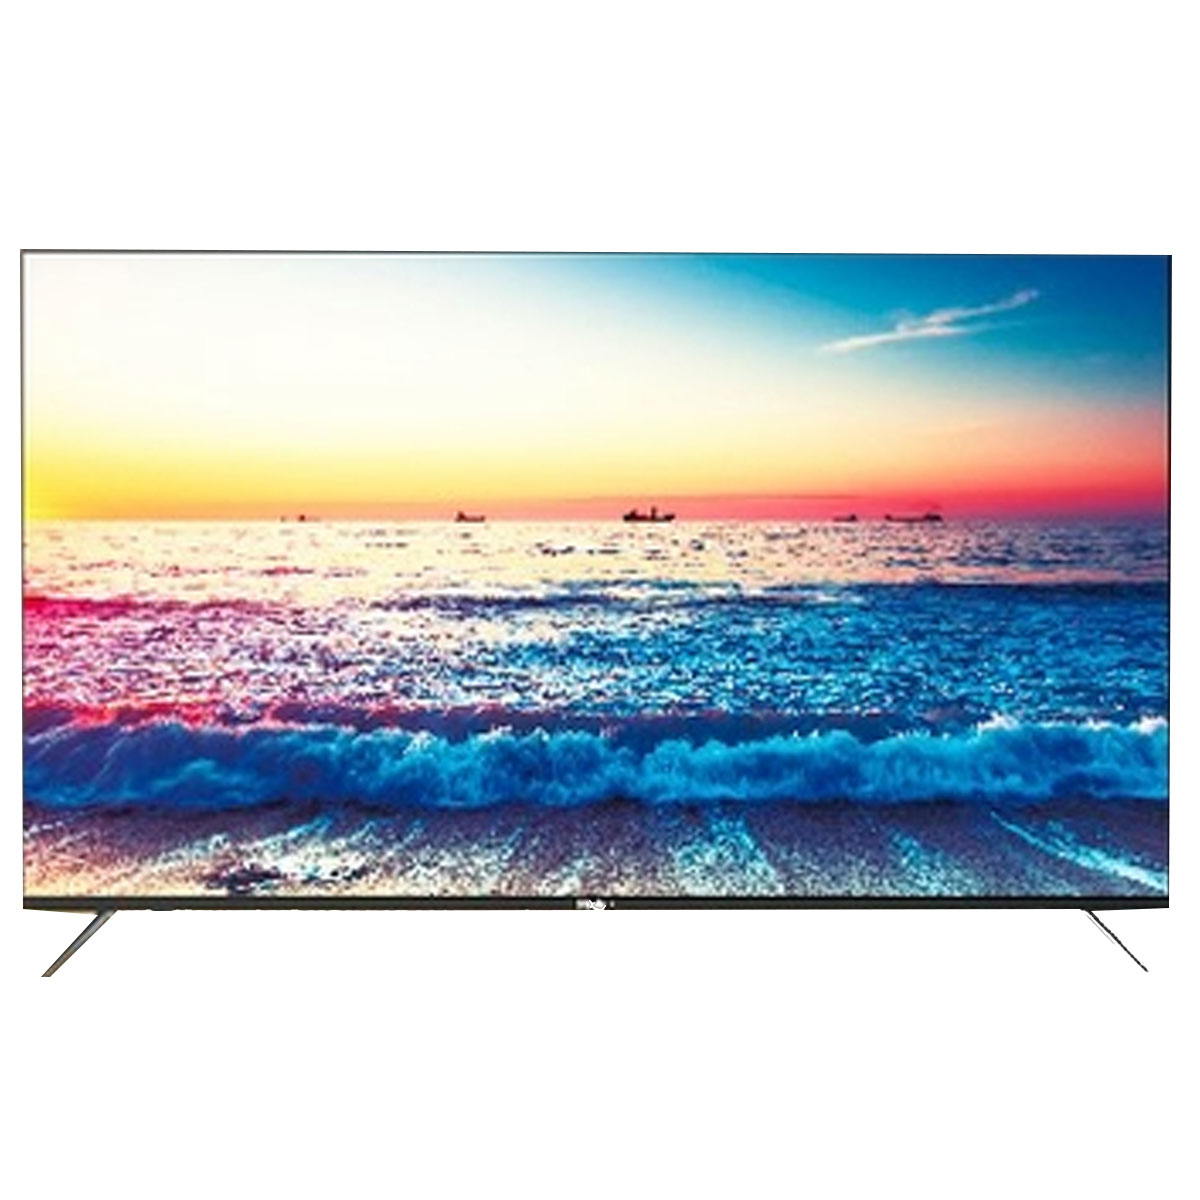 Haier 50 Inch Smart HD LED TV (LE50K6600UG)